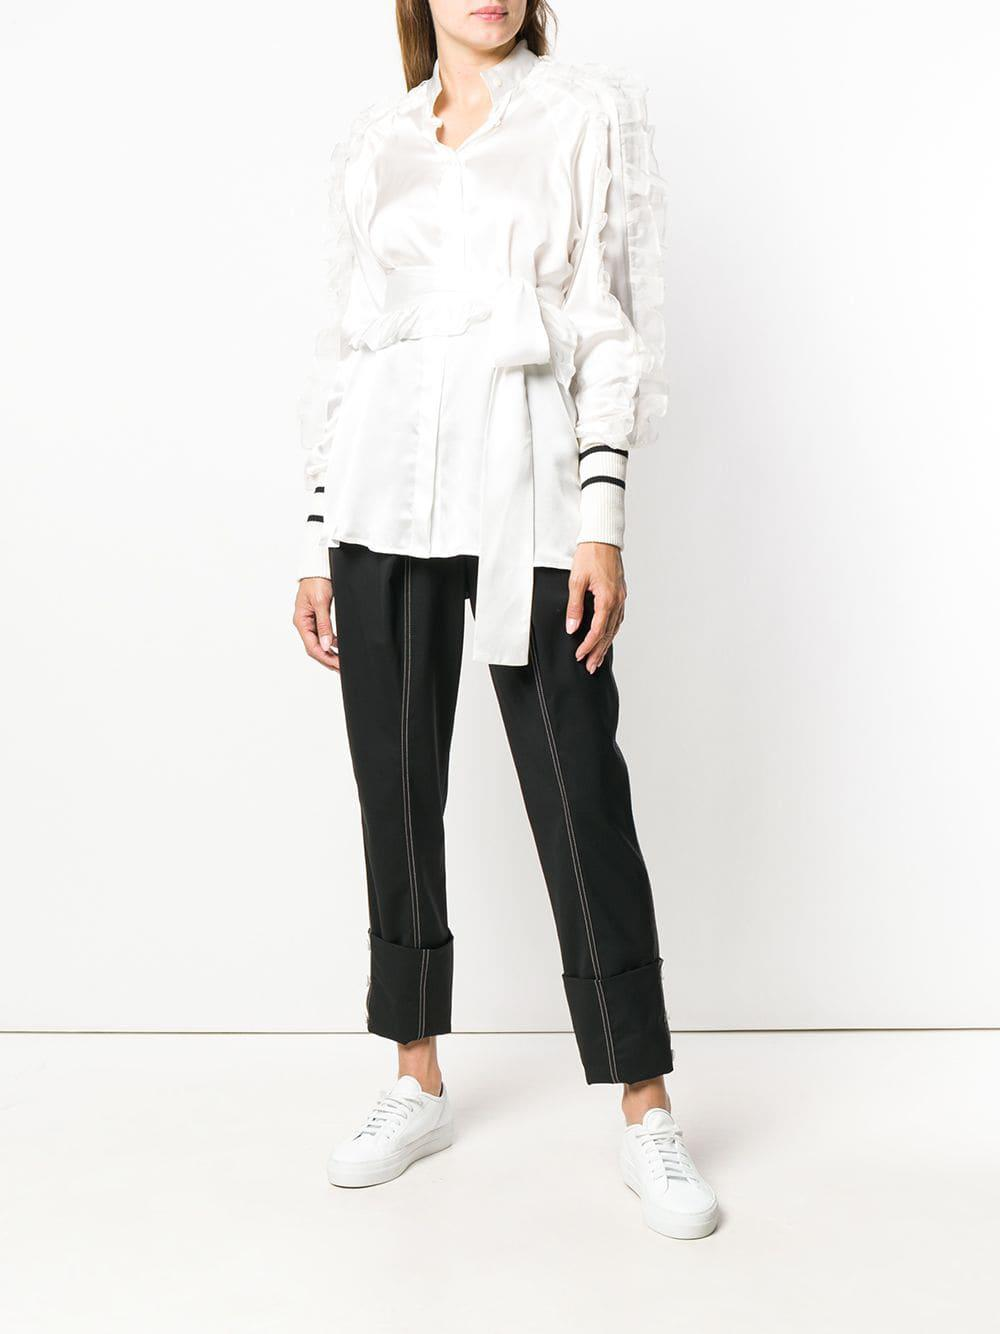 799693e2f44cba Lyst - Maggie Marilyn Ruffled Sleeve Blouse in White - Save 55%